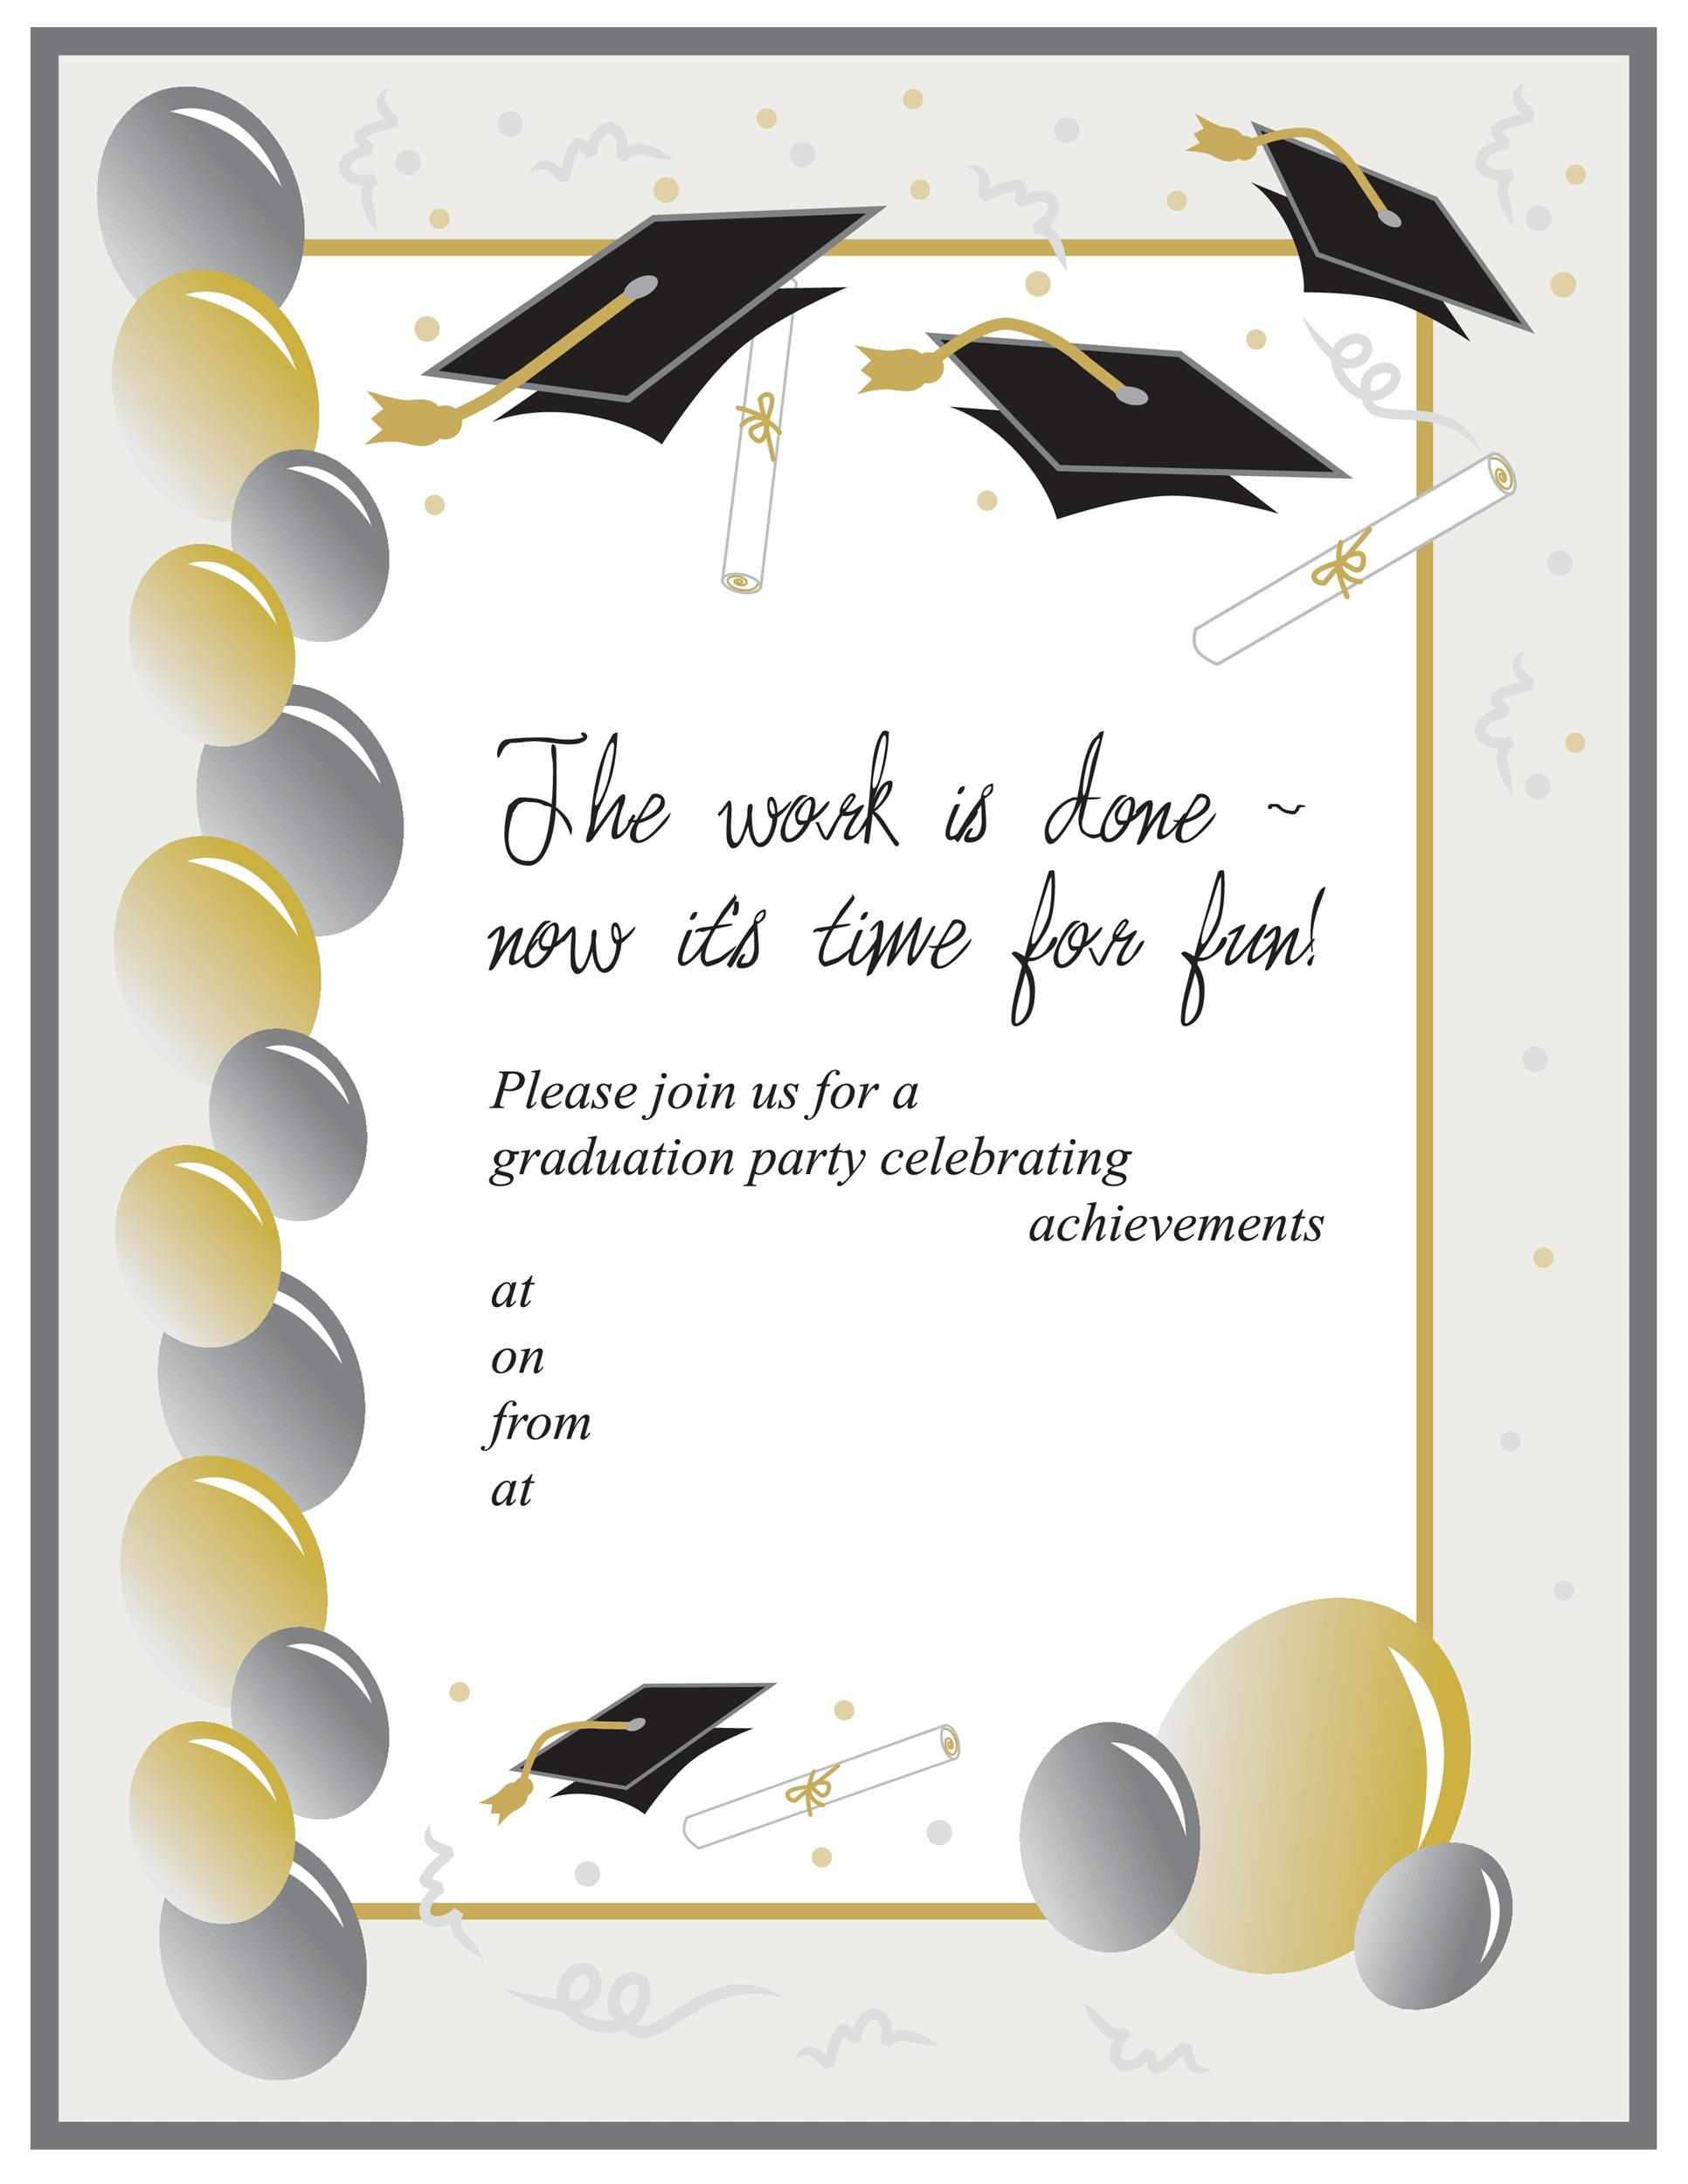 FREE Graduation Invitation Templates Template Lab - Celebrate it invitation templates